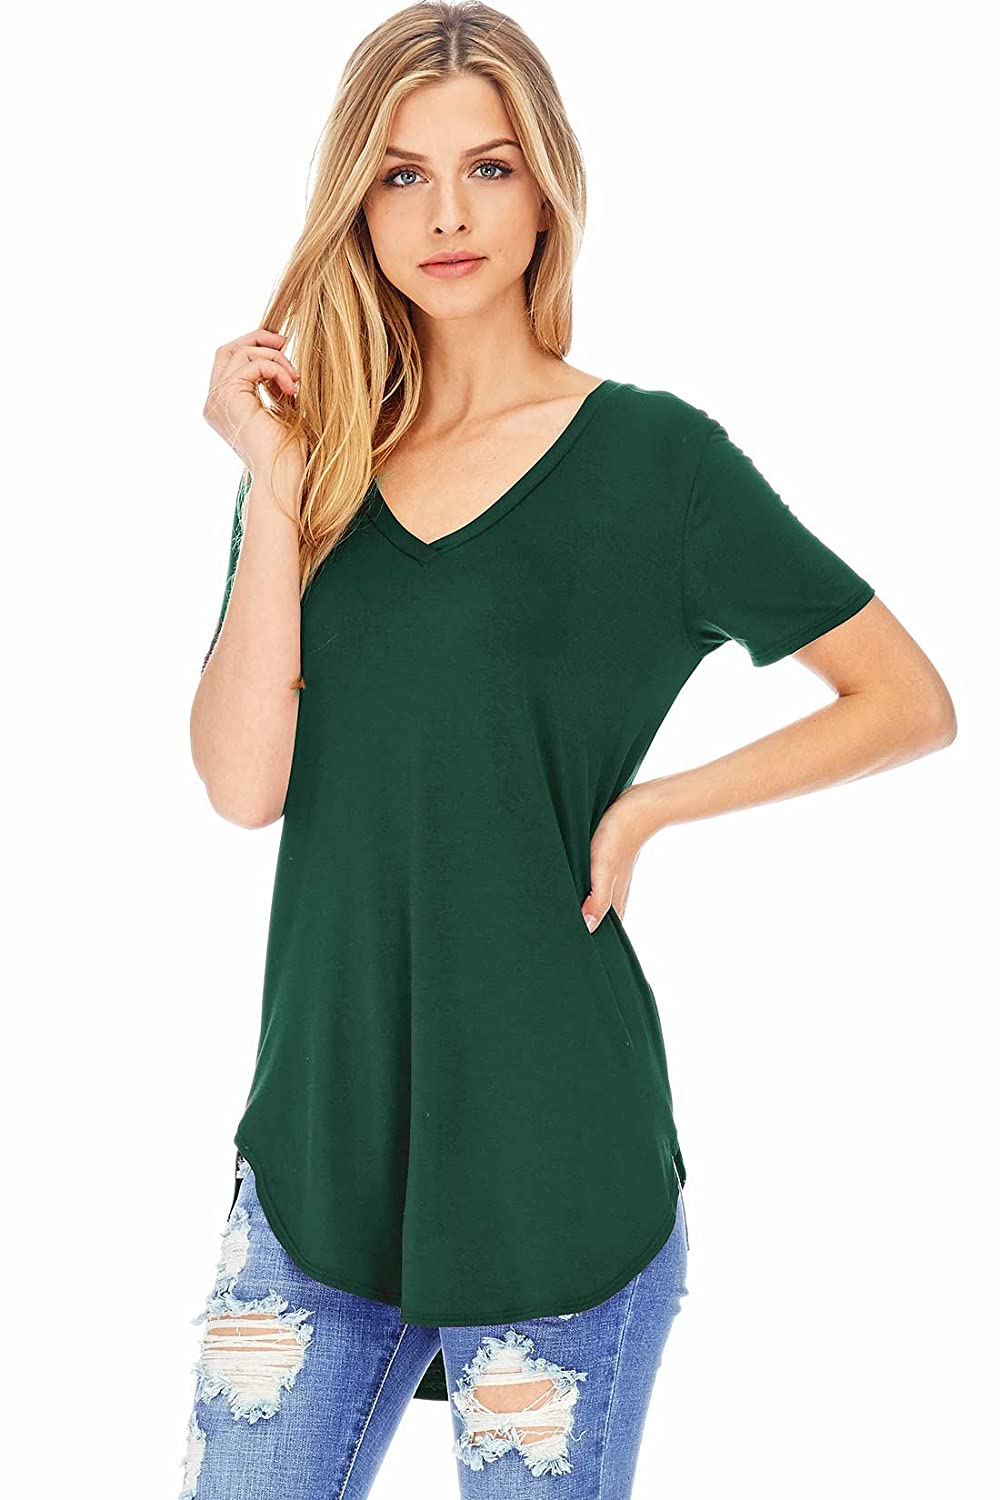 Emmas Closet Women's Oversize Stretchy V-Neck Tee